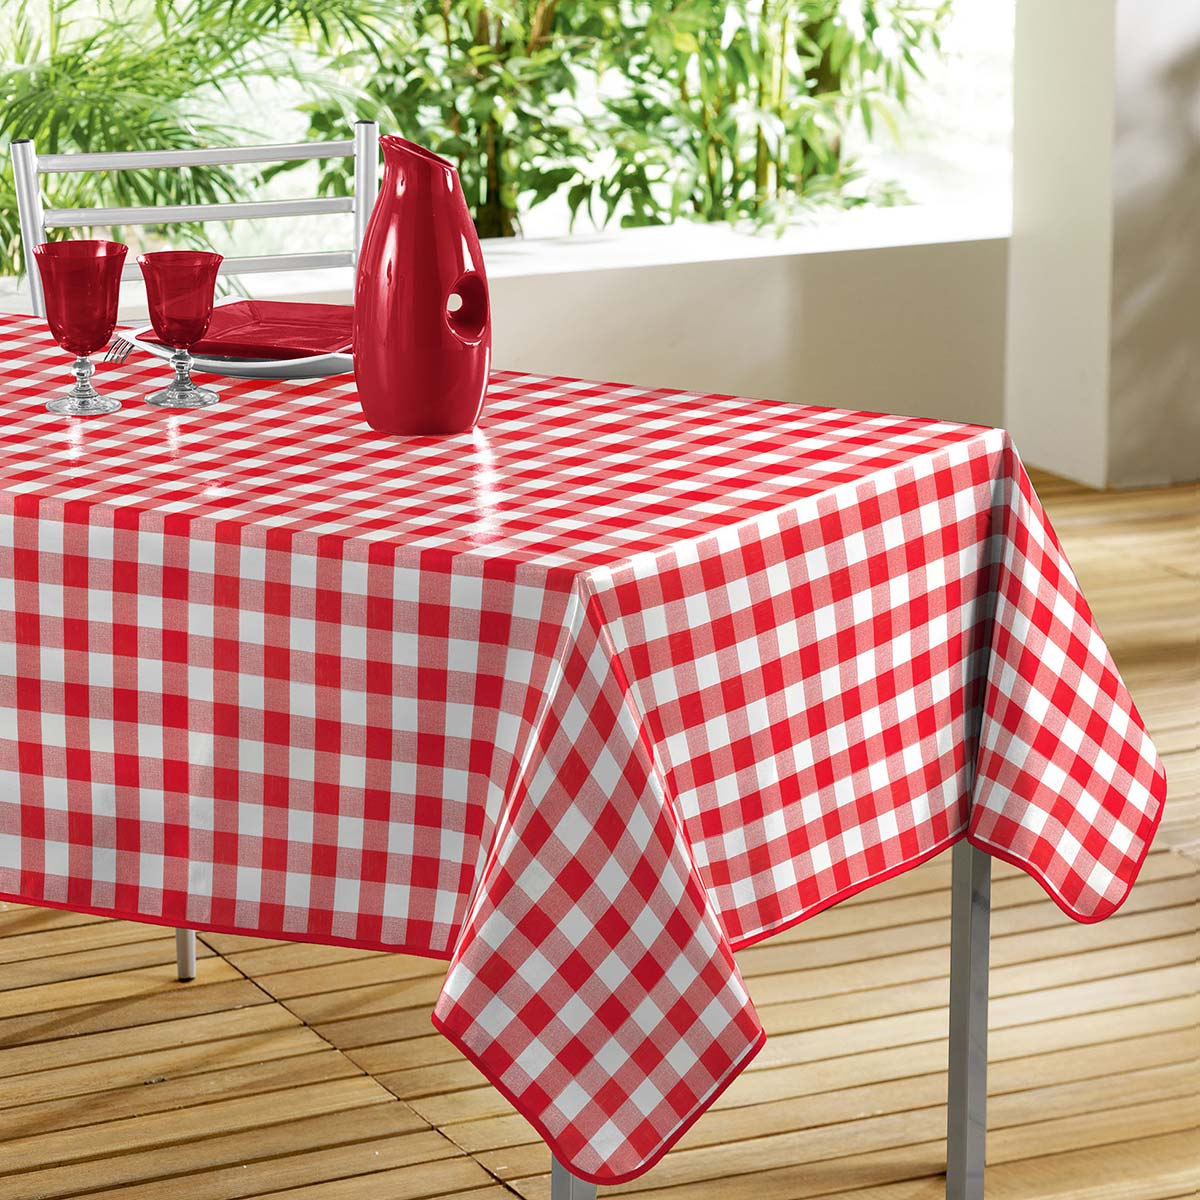 nappe de table 140x240cm vichy rouge en toile cir e rouge blanc 150 x 240 ebay. Black Bedroom Furniture Sets. Home Design Ideas